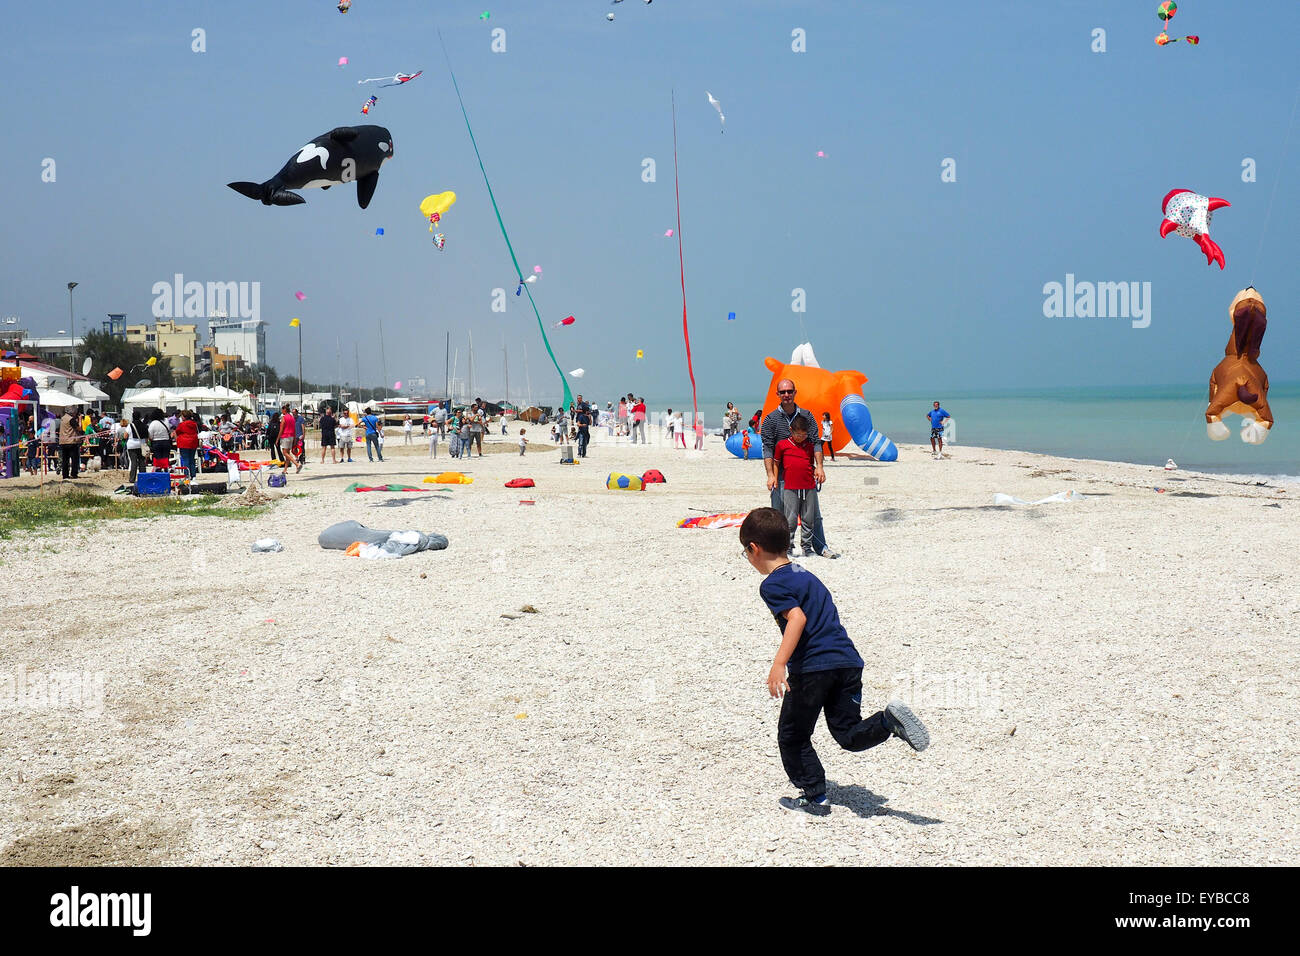 A young boy running on the beach, colourful and animal shaped kites flying over a beach. - Stock Image